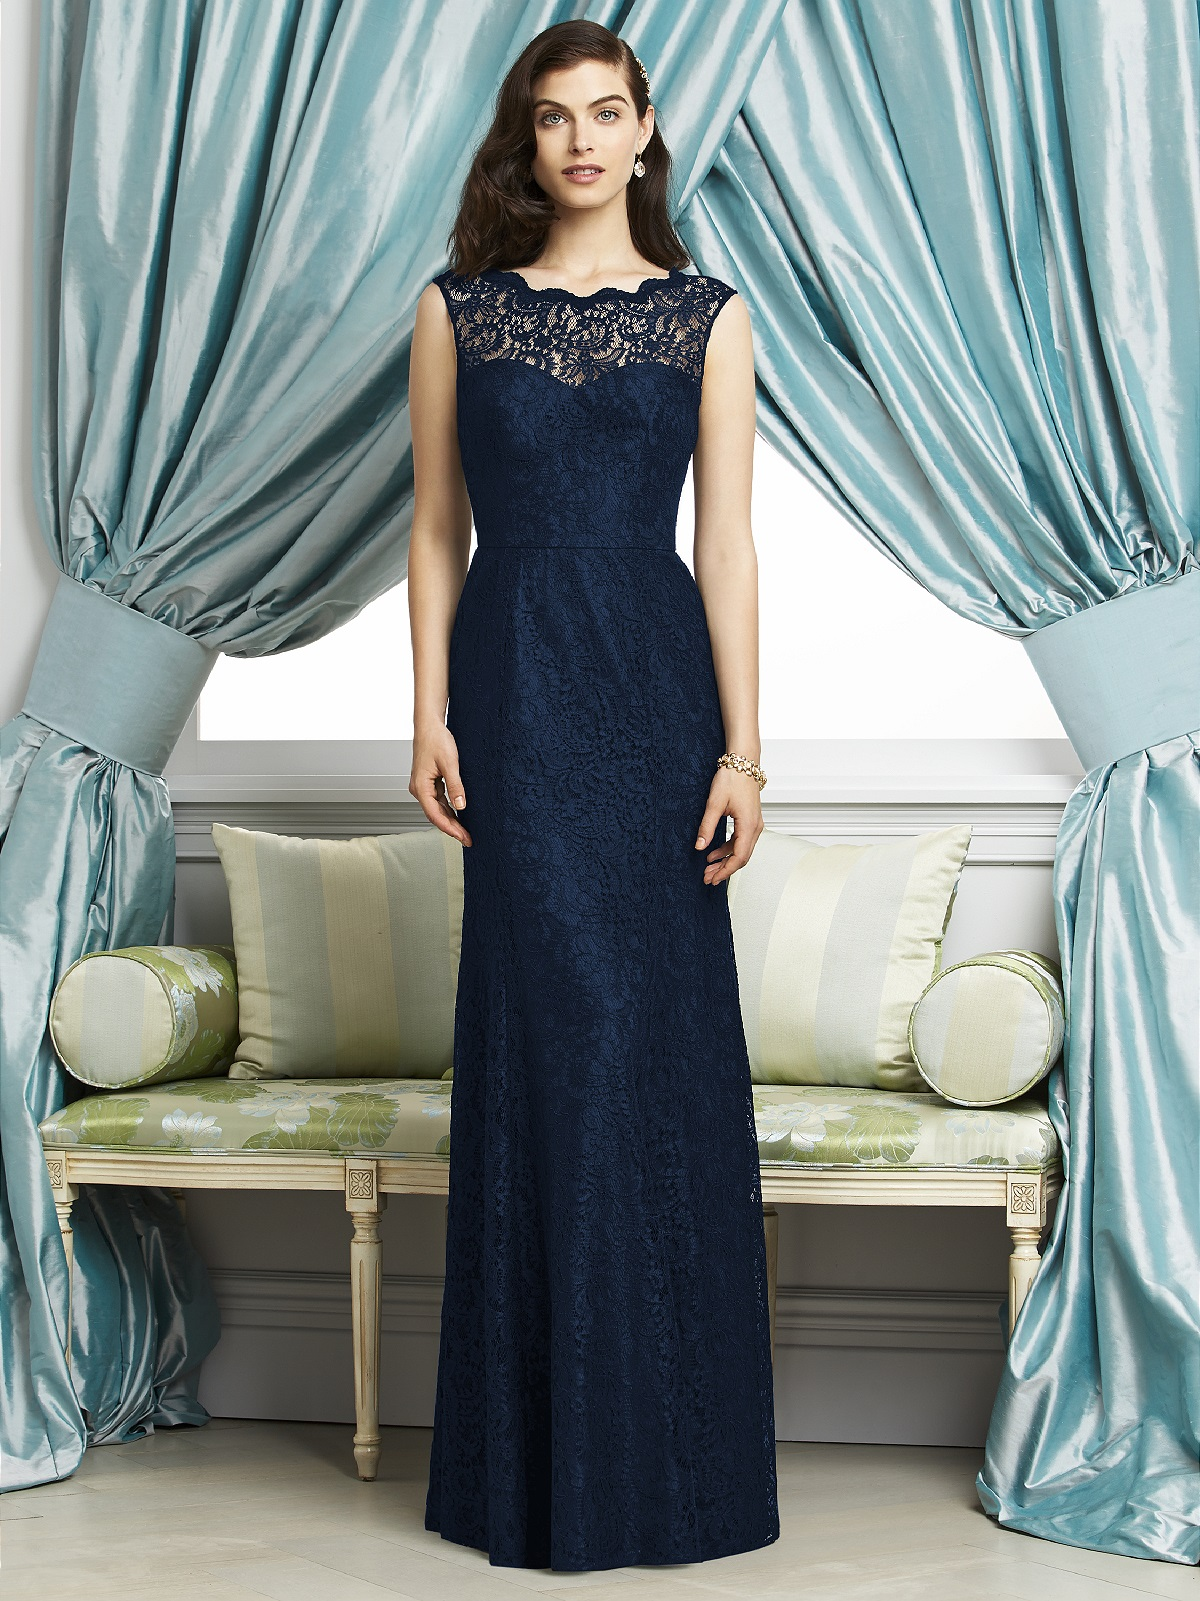 Dessy bridesmaid dresses online uk wedding dresses in jax dessy bridesmaid dresses online uk 54 ombrellifo Choice Image